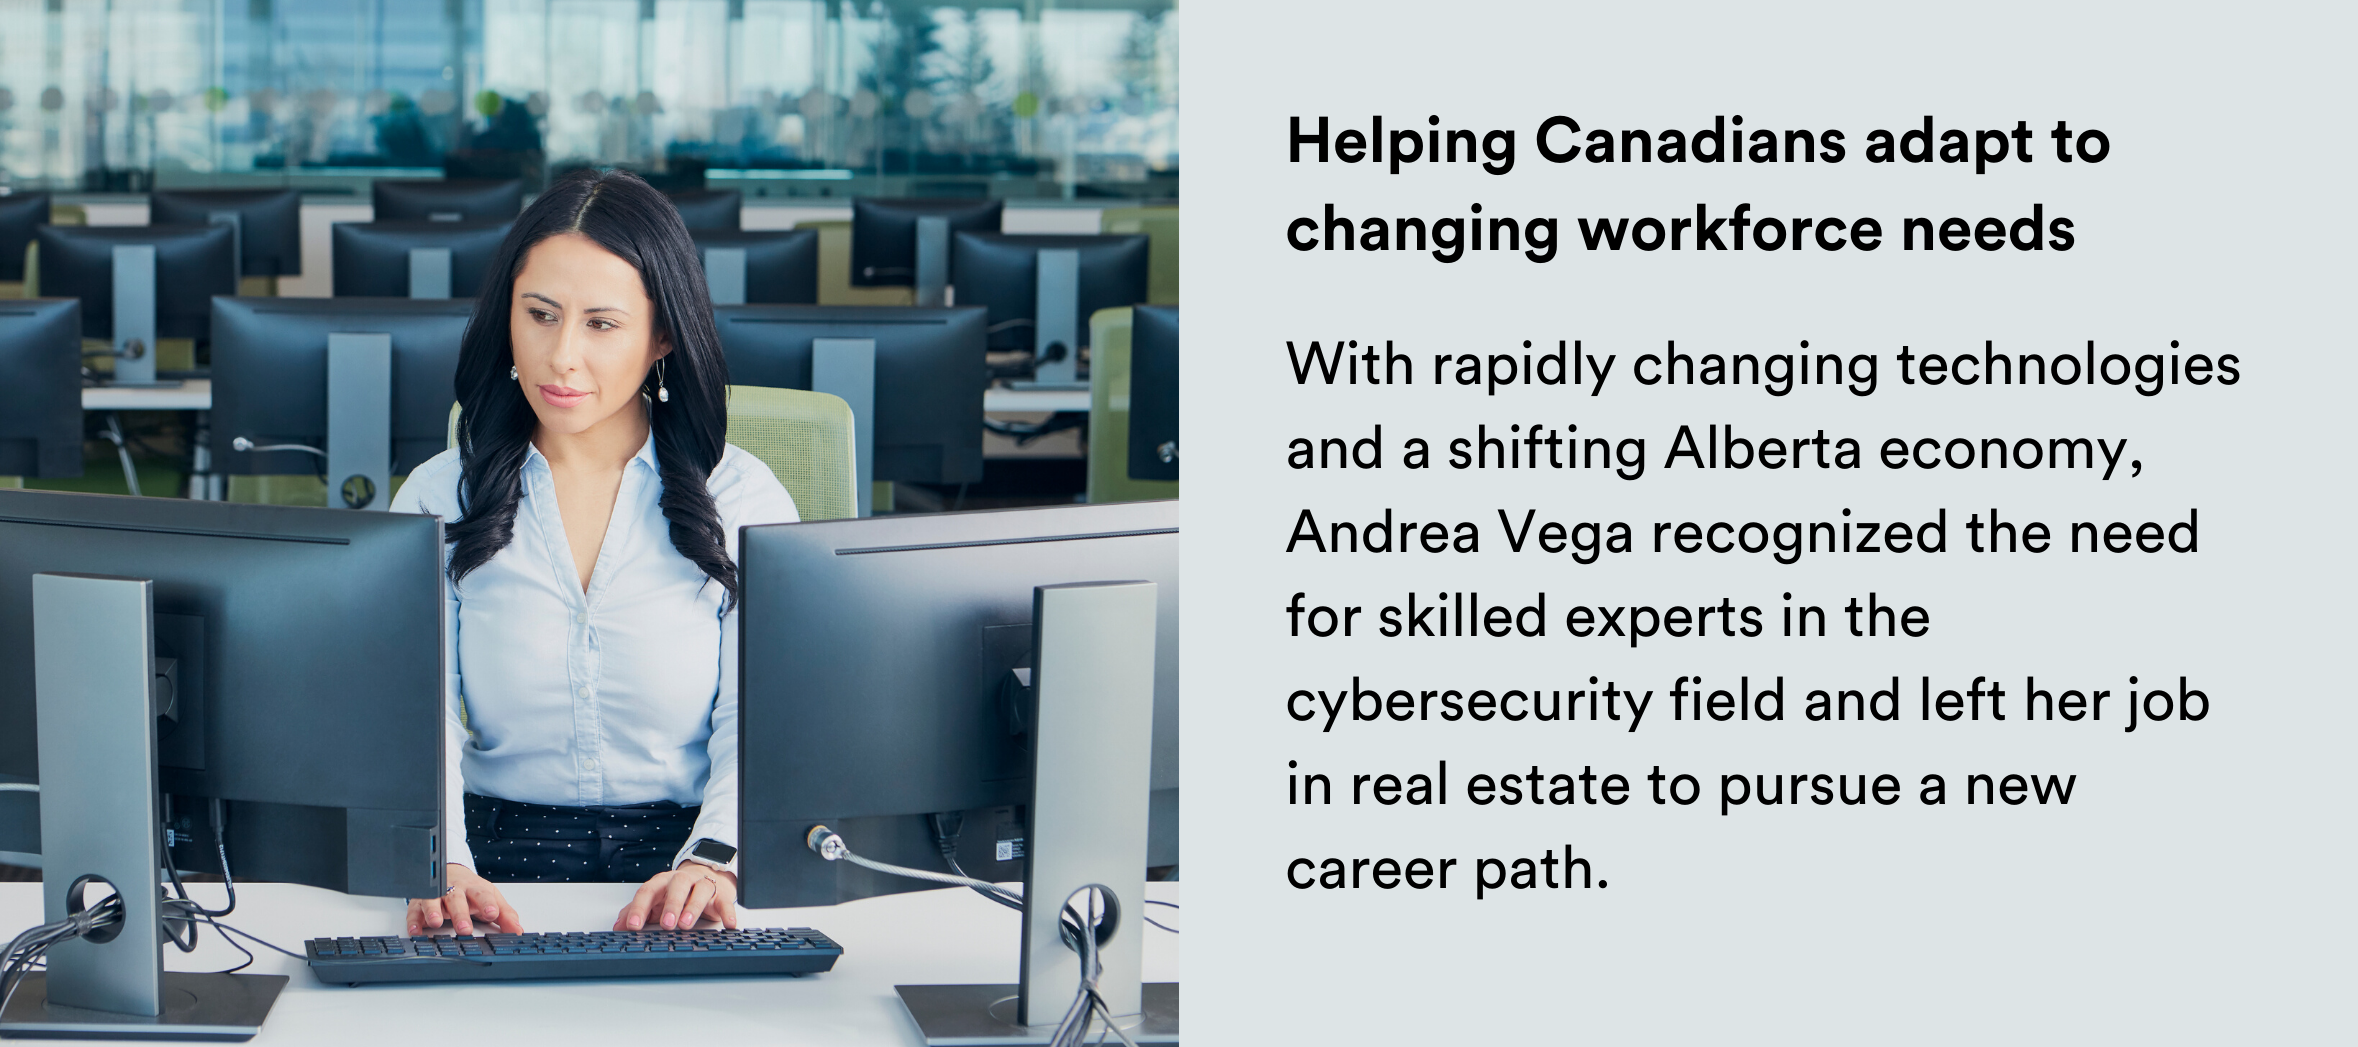 Image: Woman sitting in a computer lab. Text: Helping Canadians adapt to changing workforce needs With rapidly changing technologies and a shifting Alberta economy, Andrea Vega recognized the need for skilled experts in the cybersecurity field and left her job in real estate to pursue a new career path.